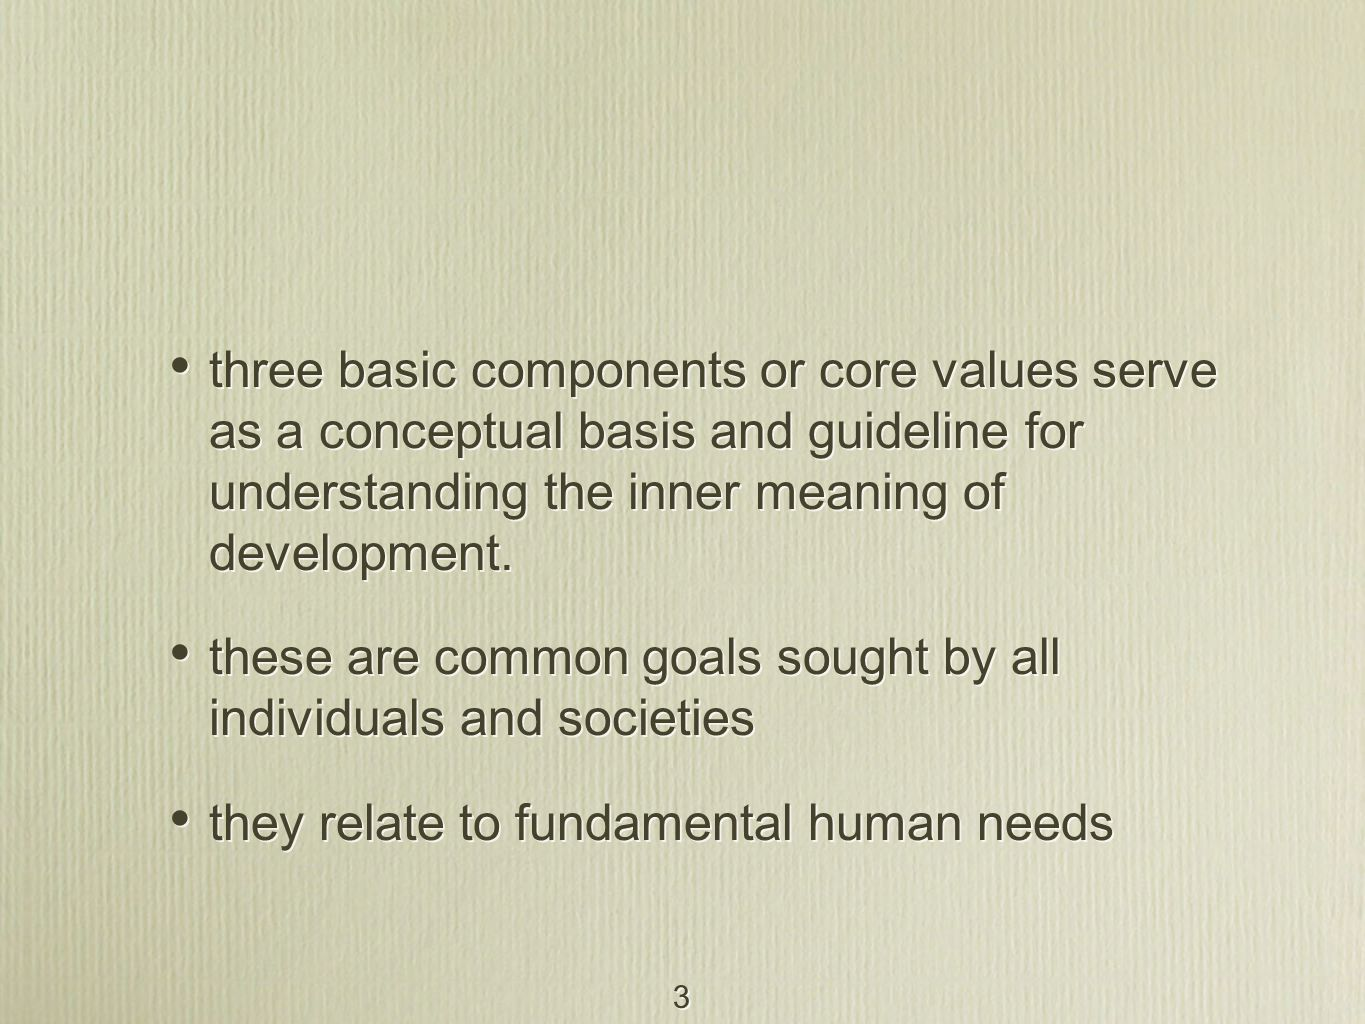 three basic components or core values serve as a conceptual basis and guideline for understanding the inner meaning of development.